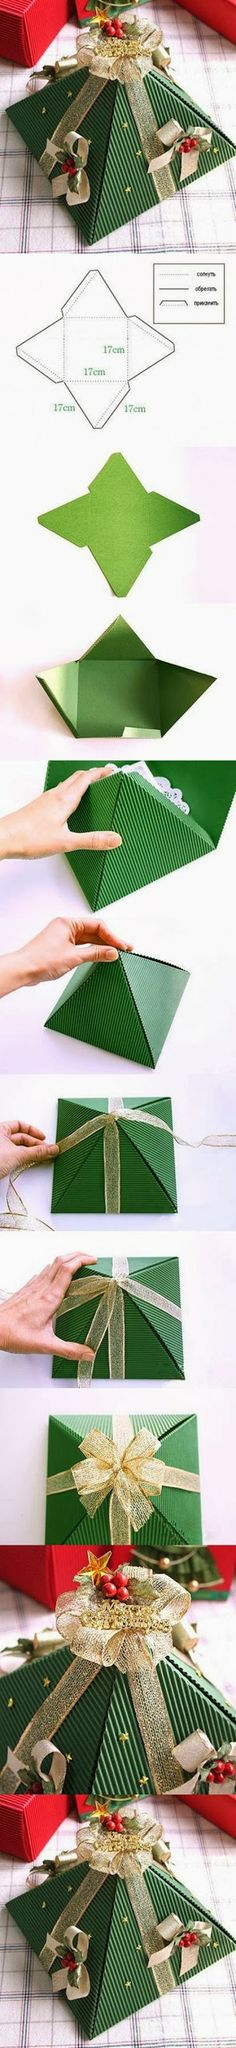 DIY : Pyramid Christmas Box | DIY & Crafts Tutorials